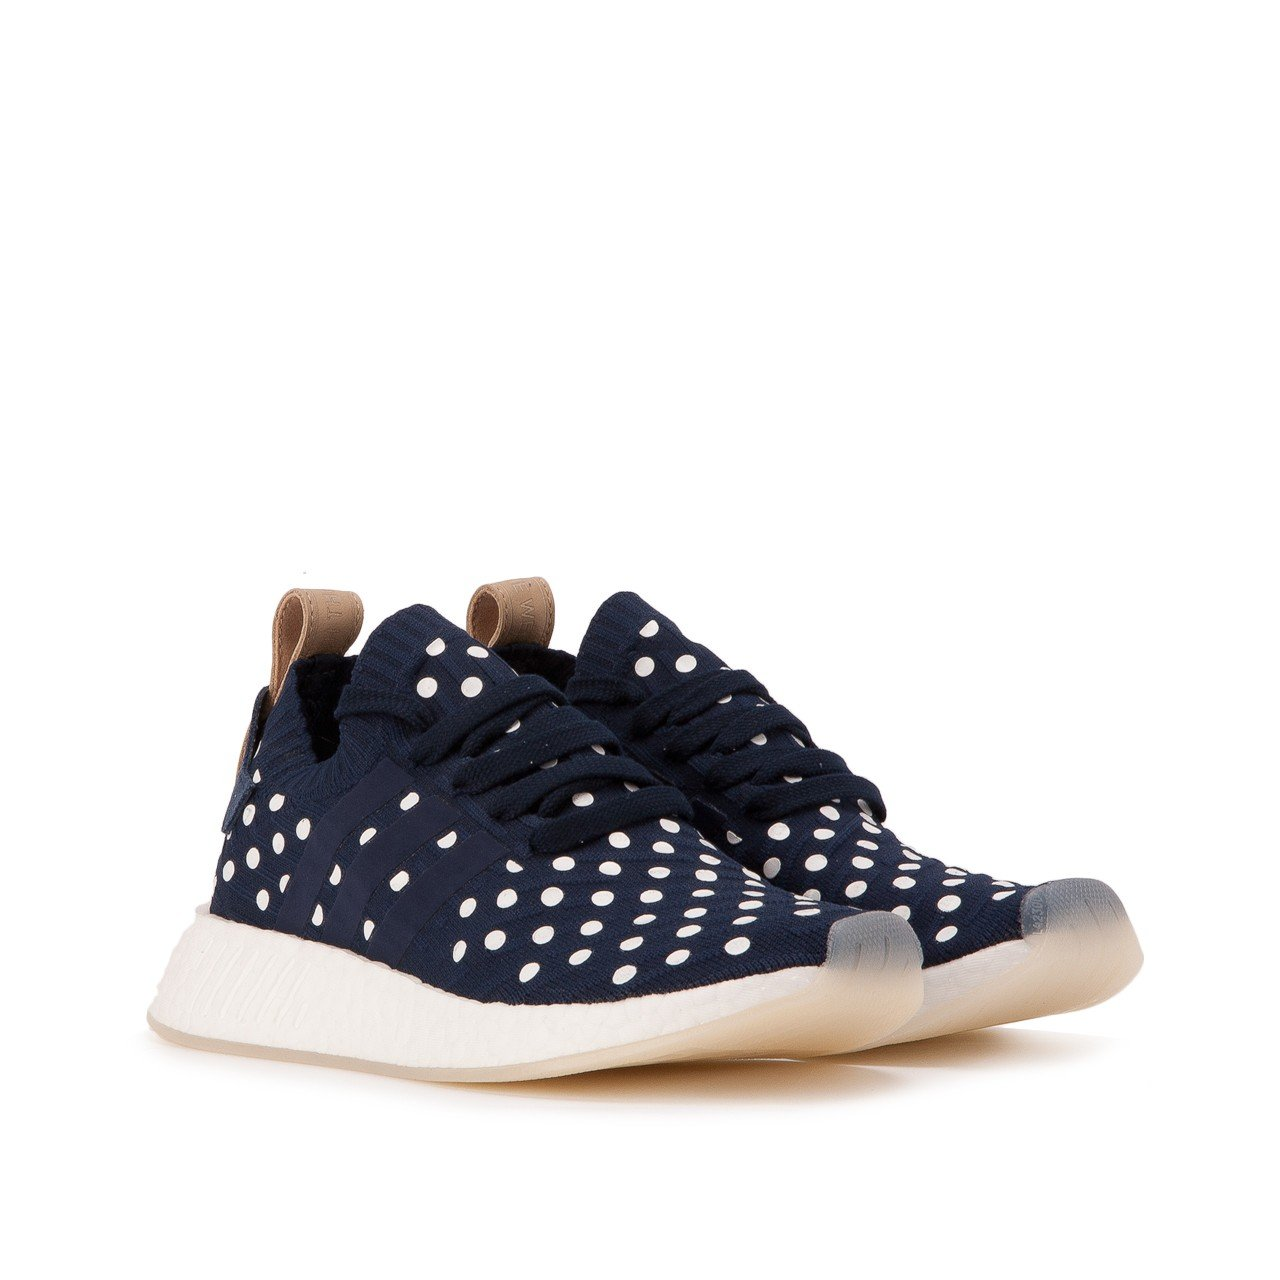 buy popular 4870b 55968 Amazon.com | adidas Women NMD R2 Primeknit W Navy Collegiate ...